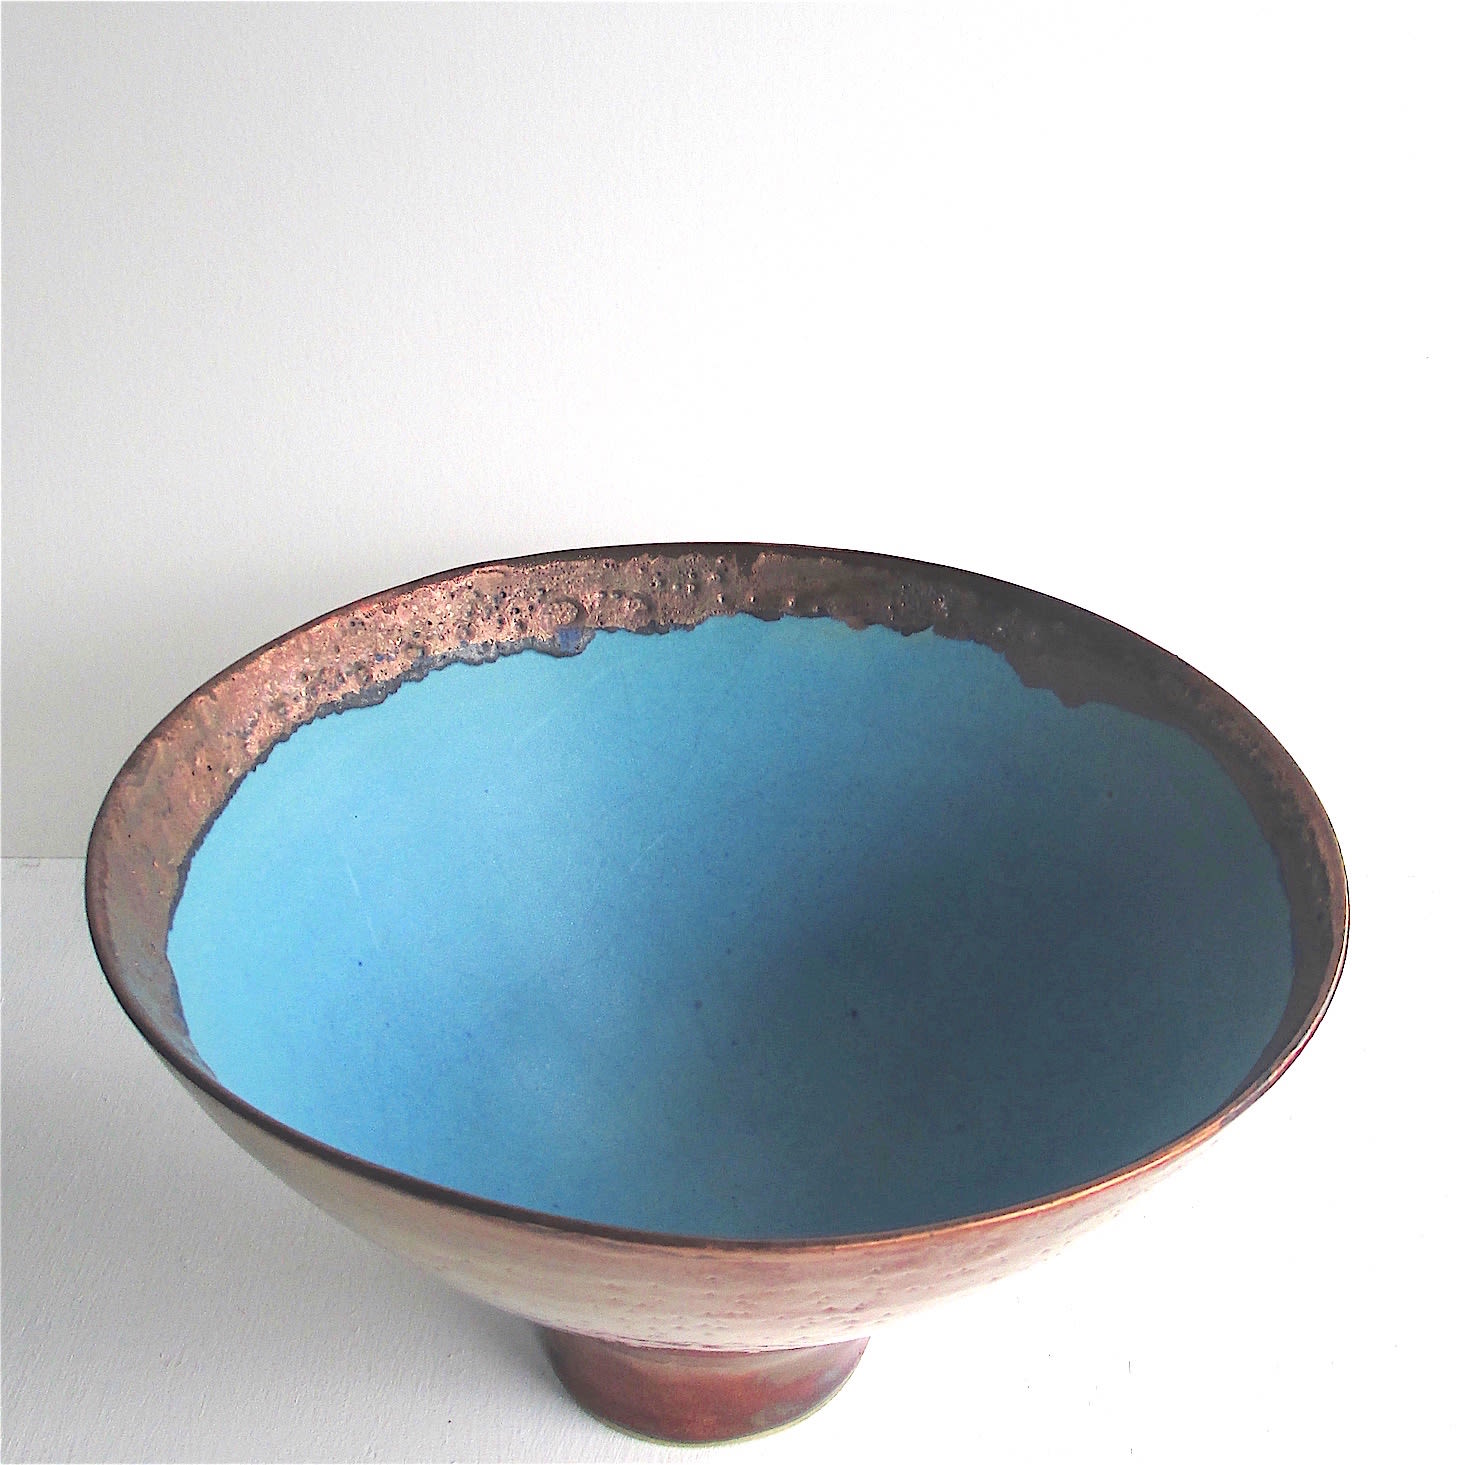 """<span class=""""link fancybox-details-link""""><a href=""""/artists/44-sarah-perry/works/7450-sarah-perry-copper-lustred-turquoise-bowl-2020/"""">View Detail Page</a></span><div class=""""artist""""><strong>Sarah Perry</strong></div> b. 1945 <div class=""""title""""><em>Copper Lustred Turquoise Bowl</em>, 2020</div> <div class=""""signed_and_dated"""">impressed with the artist's seal 'SP'</div> <div class=""""medium"""">stoneware</div> <div class=""""dimensions"""">h 14 x dia 23 cm</div><div class=""""copyright_line"""">Own Art: £35.20 x 10 months, 0% APR</div>"""